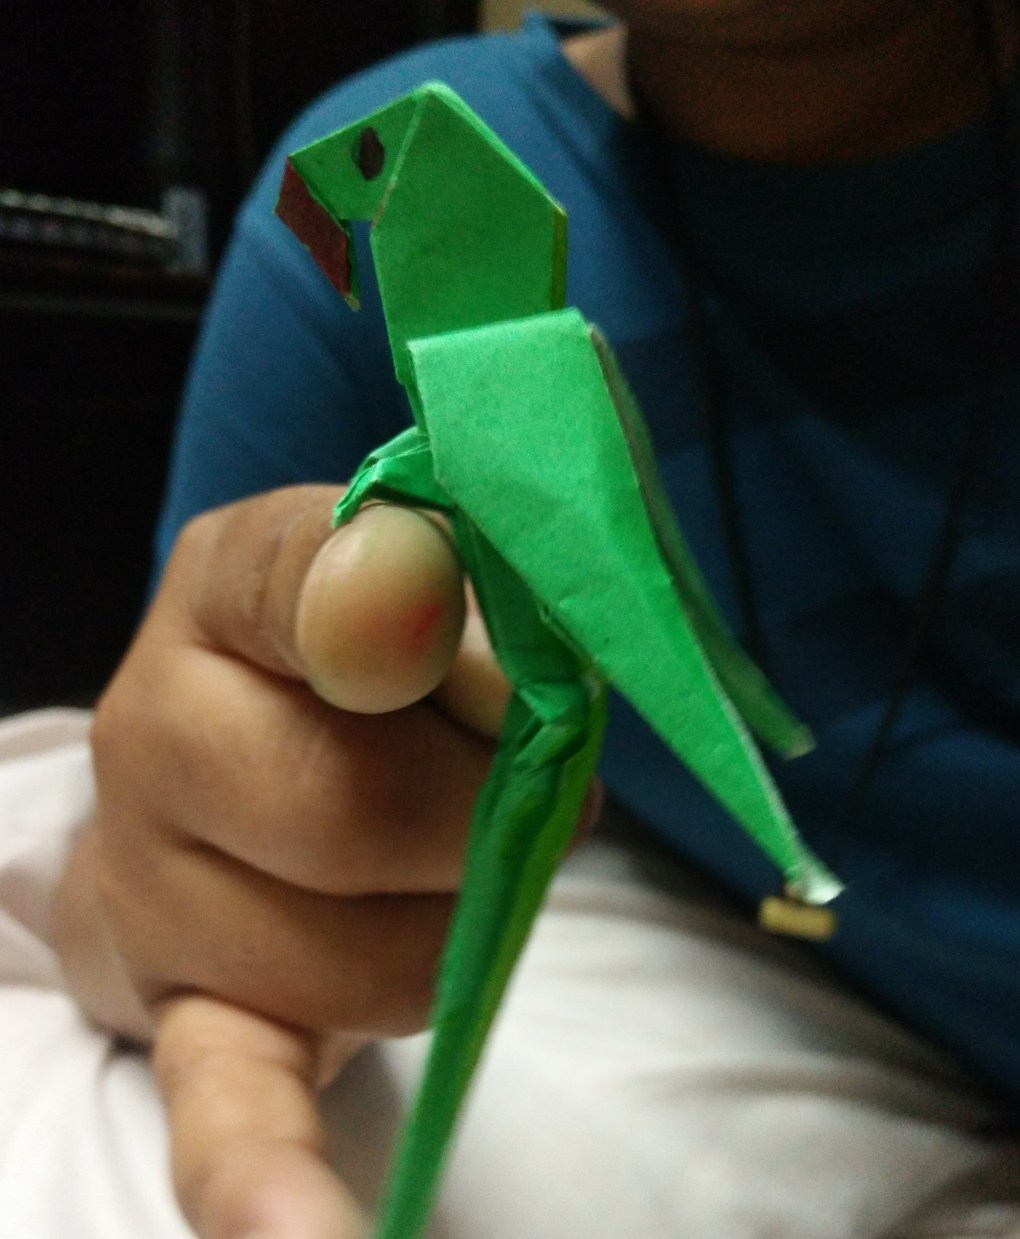 "Origami Parrot by Aahutosh Sharma, Panchkula, done during lockdown due to coronavirus pandemic for the art initiative ""Art in the time of coronavirus"""